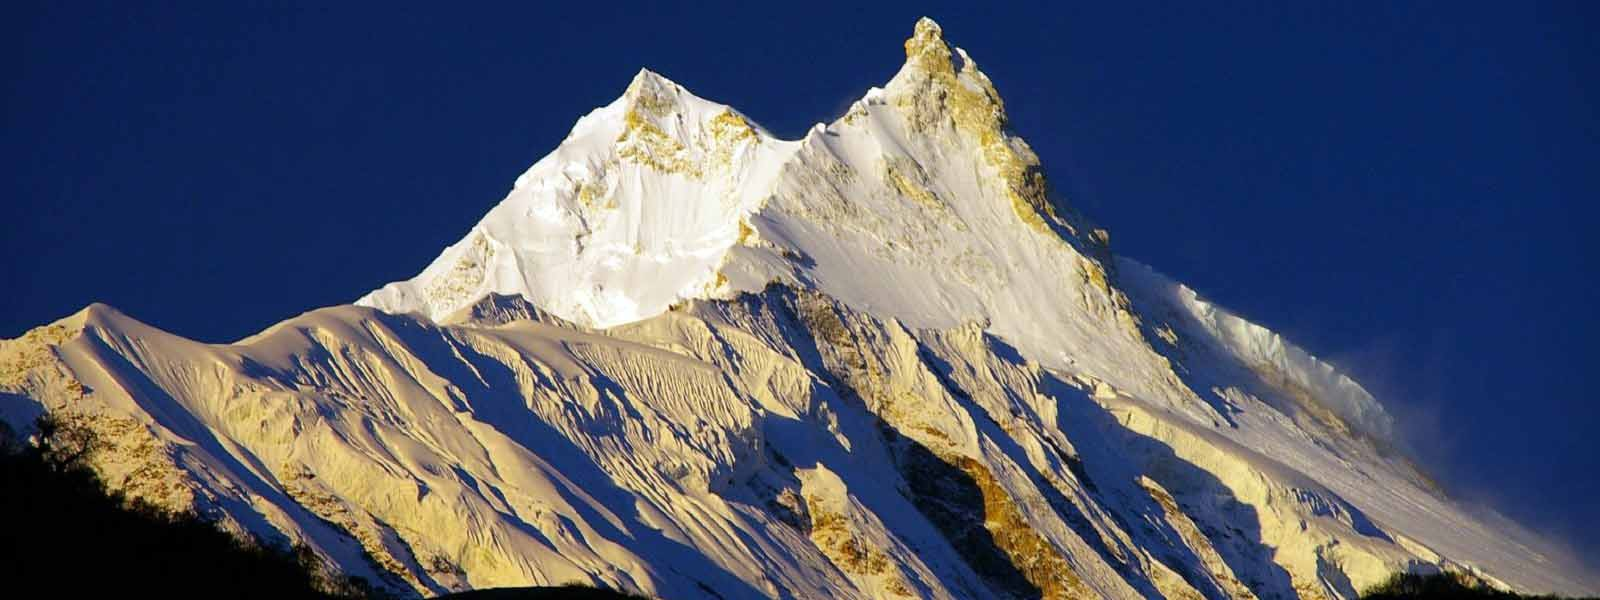 Mount Manaslu summit